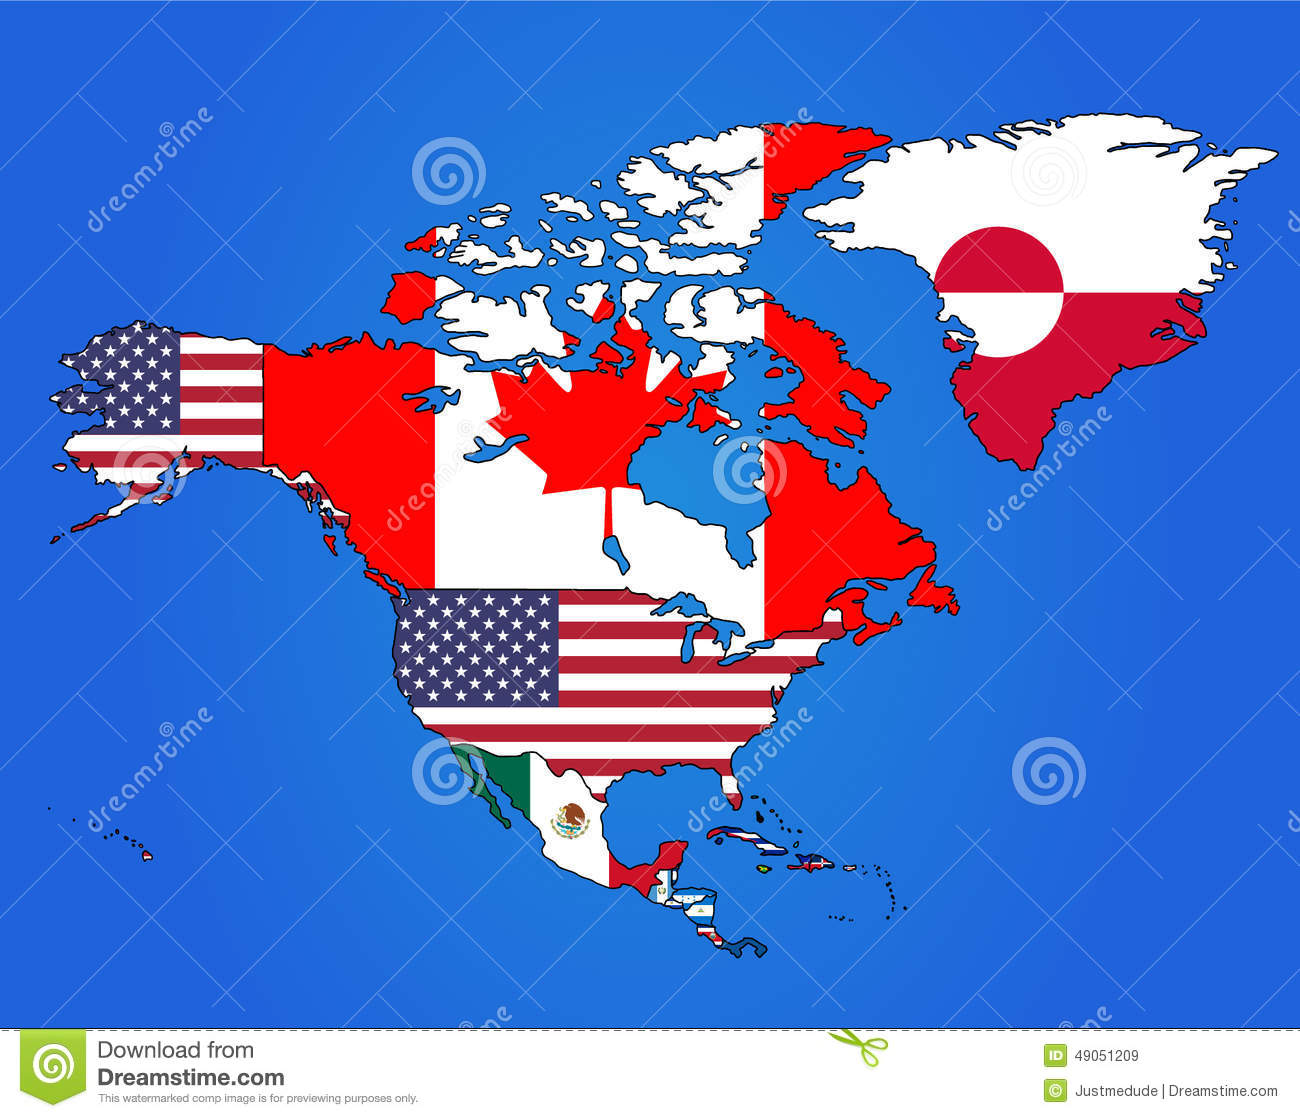 North american country map running electrical wire through studs north american country map running electrical wire through studs how to make a floor plan sciox Gallery